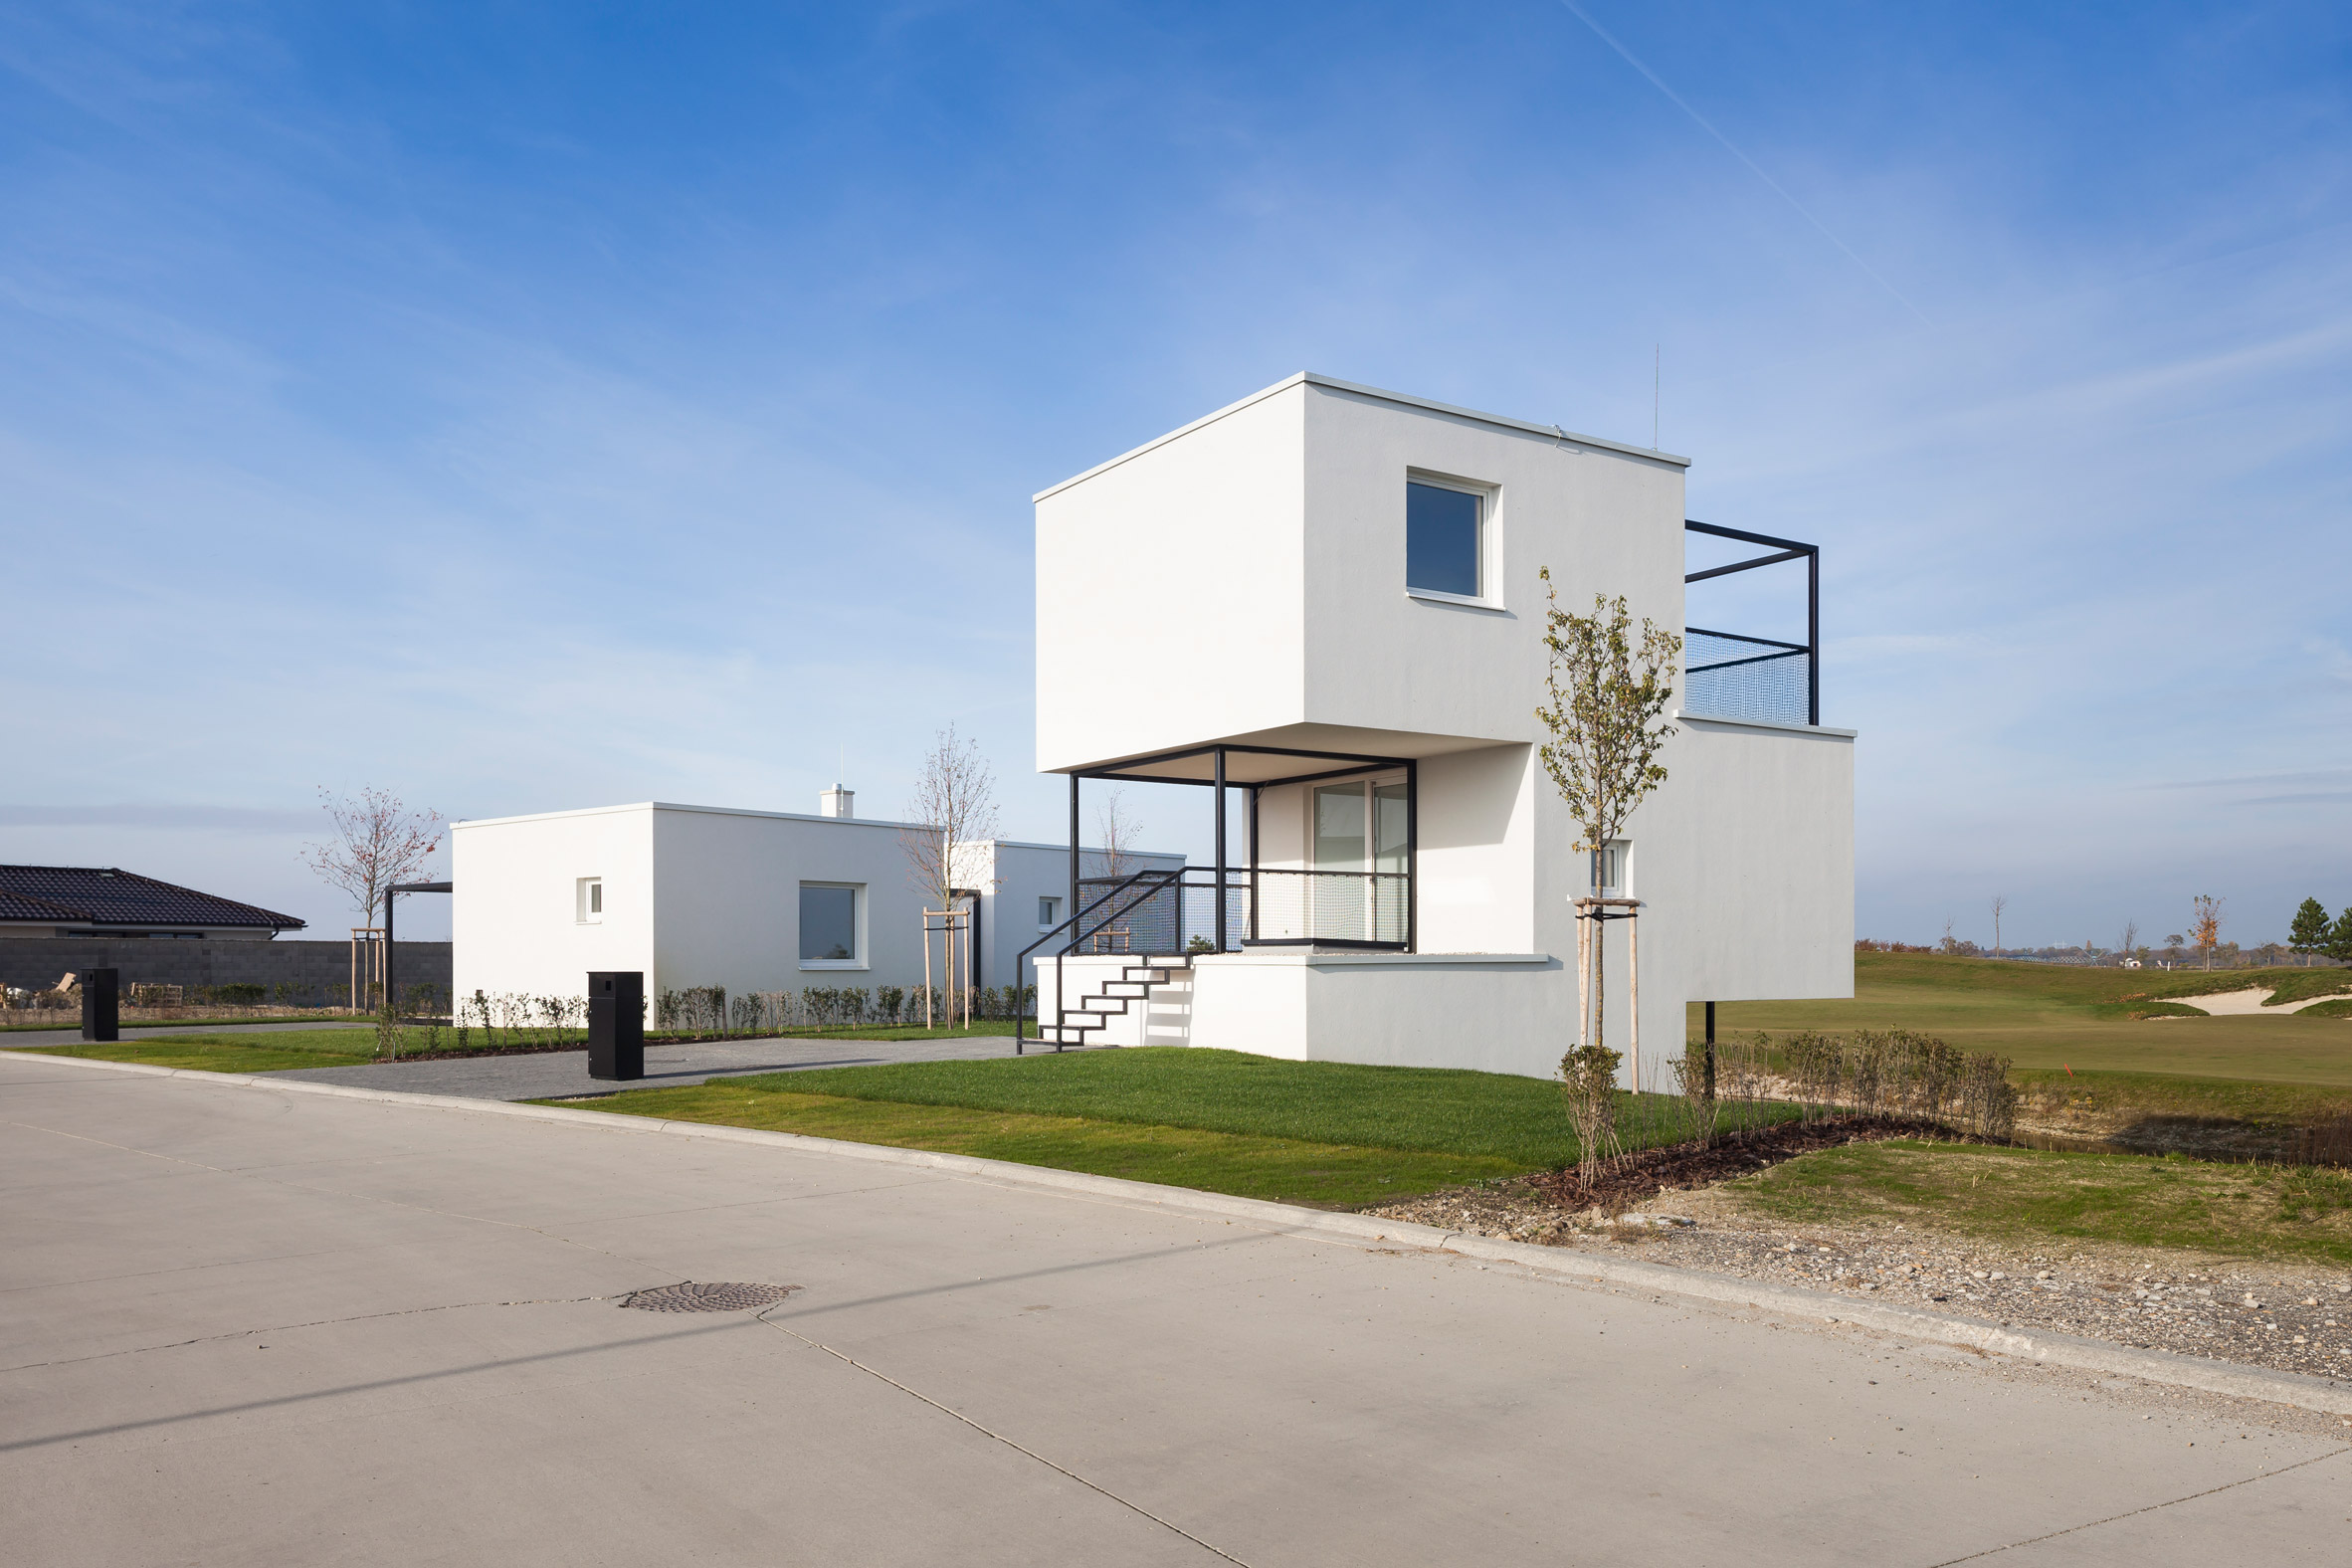 Endorphine connects white boxes with black frames to create homes at Slovakian golf resort